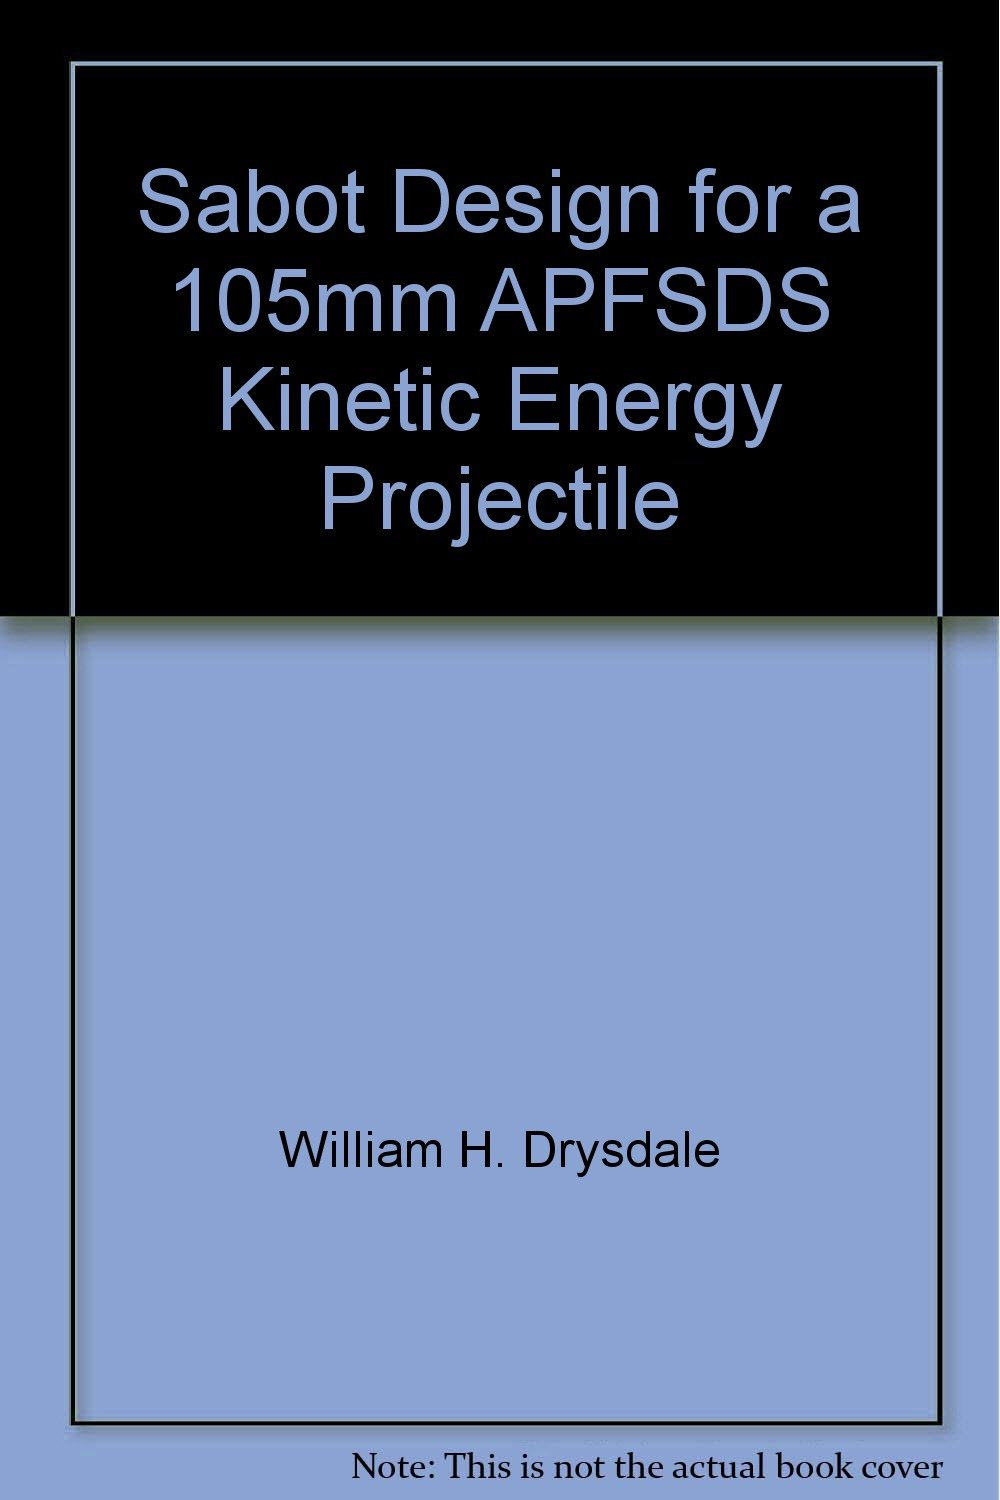 Sabot Design for a 105mm APFSDS Kinetic Energy Projectile: William H